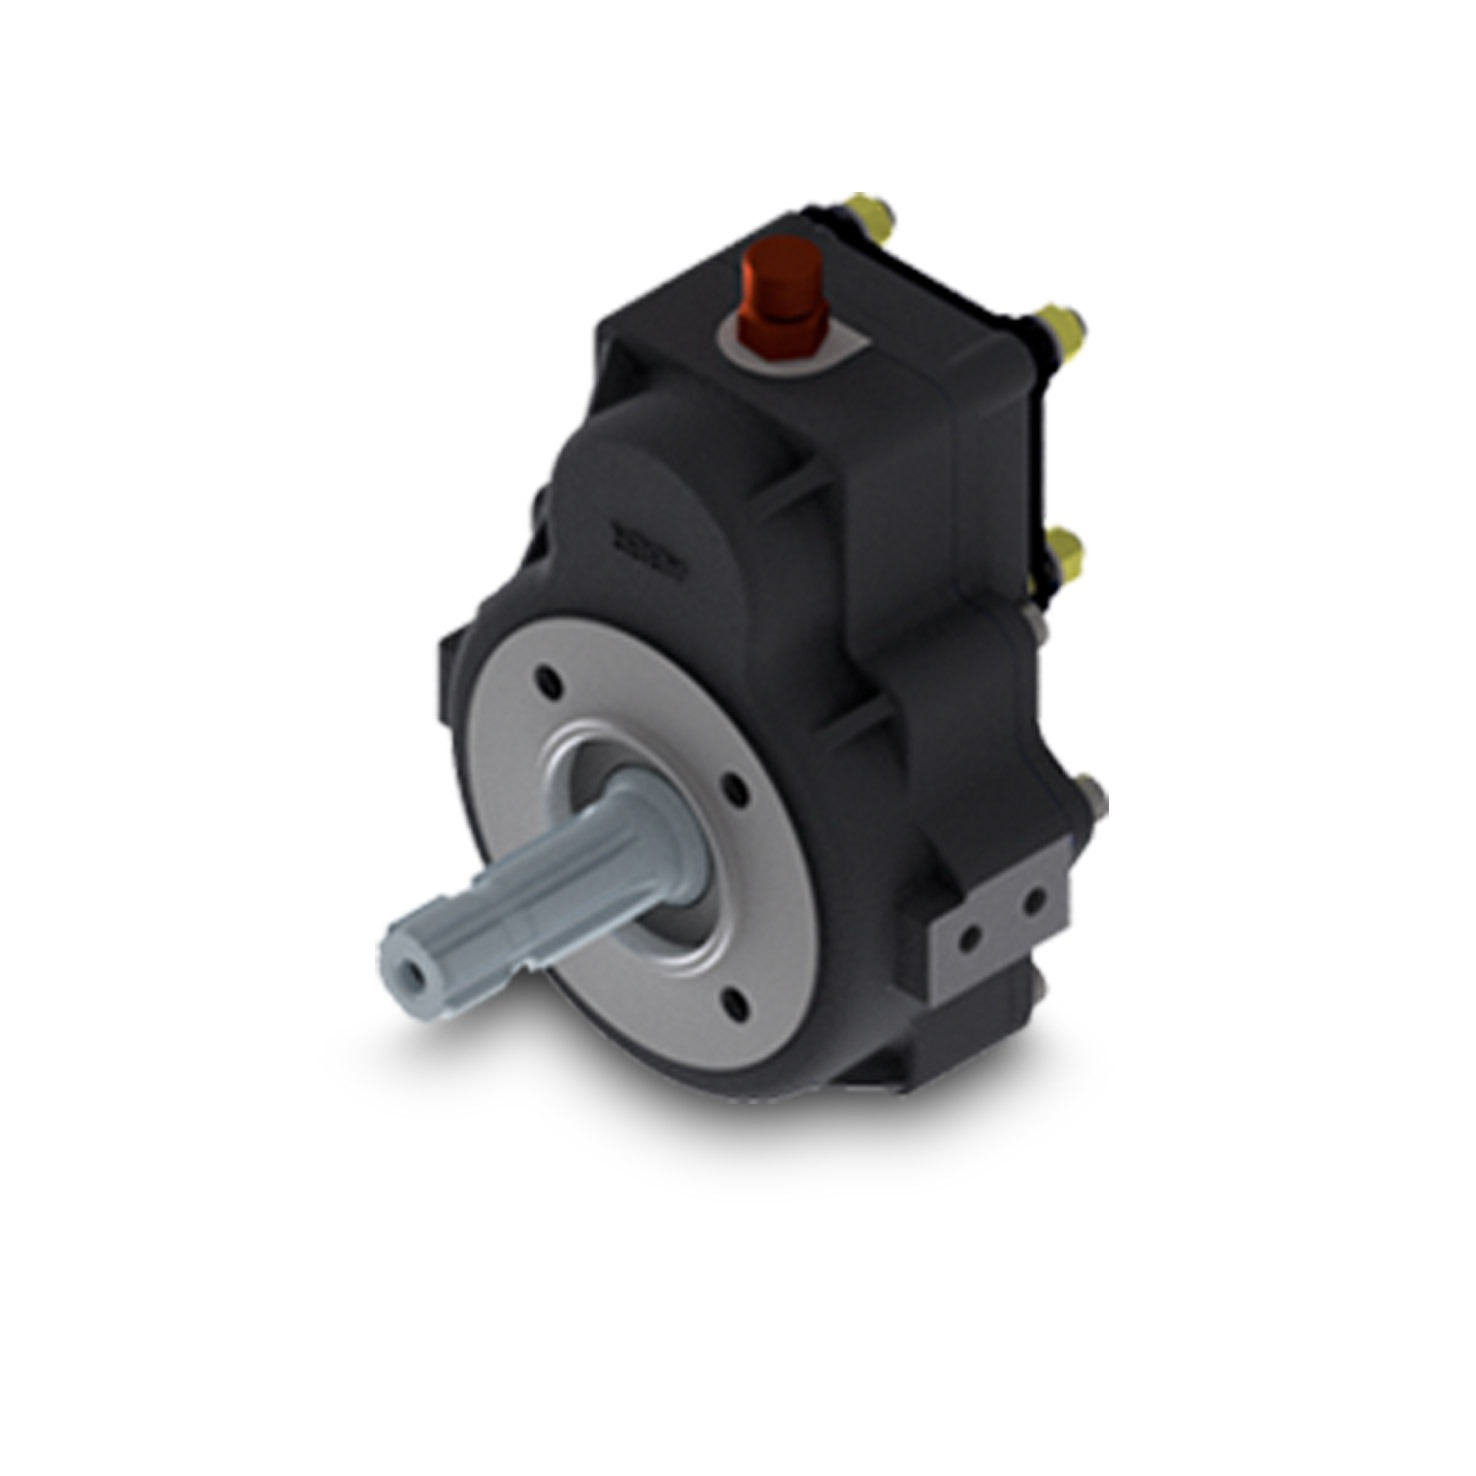 GEARBOXES & AGRICULTURAL SOLUTIONS